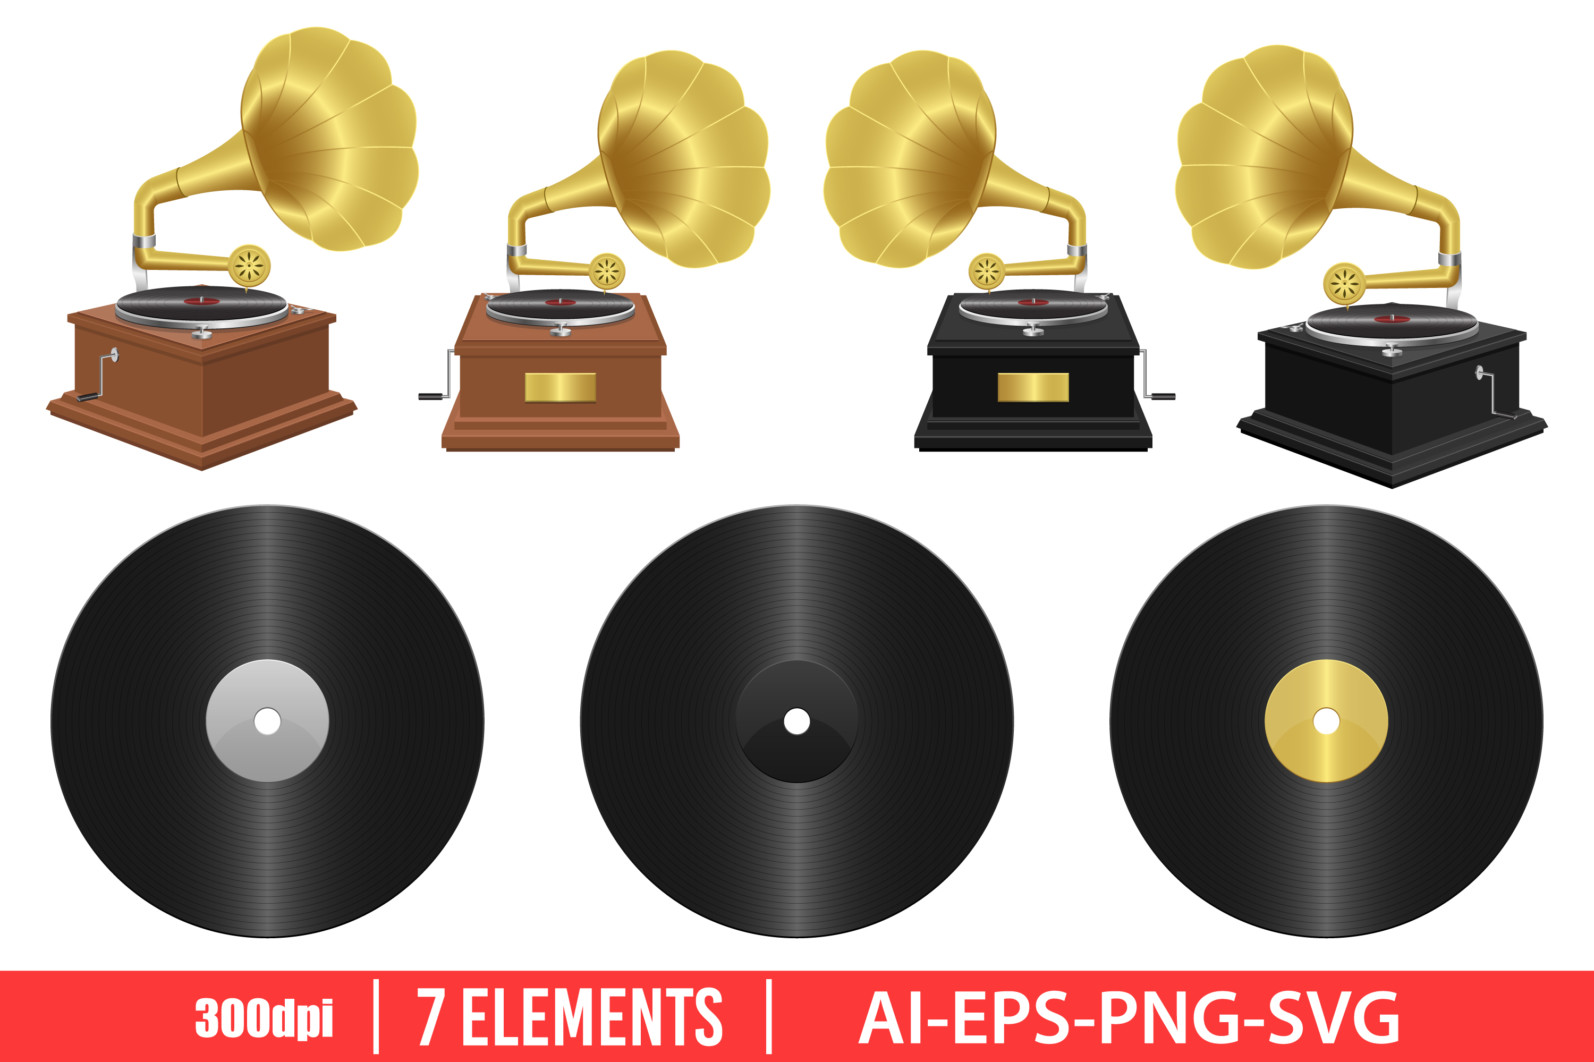 Realistic gramophone clipart vector design illustration. Gramophone set. Vector Clipart Print - GRAMOPHONE scaled -